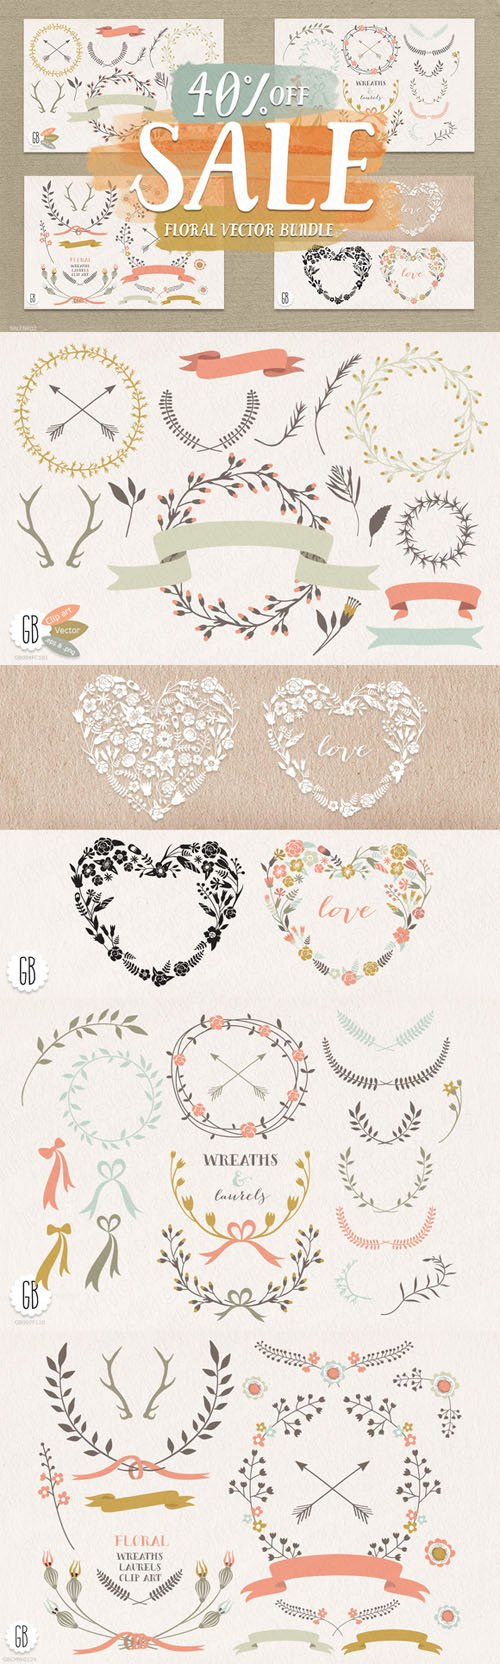 SALE! Floral elements, wreaths. - Creativemarket 46843